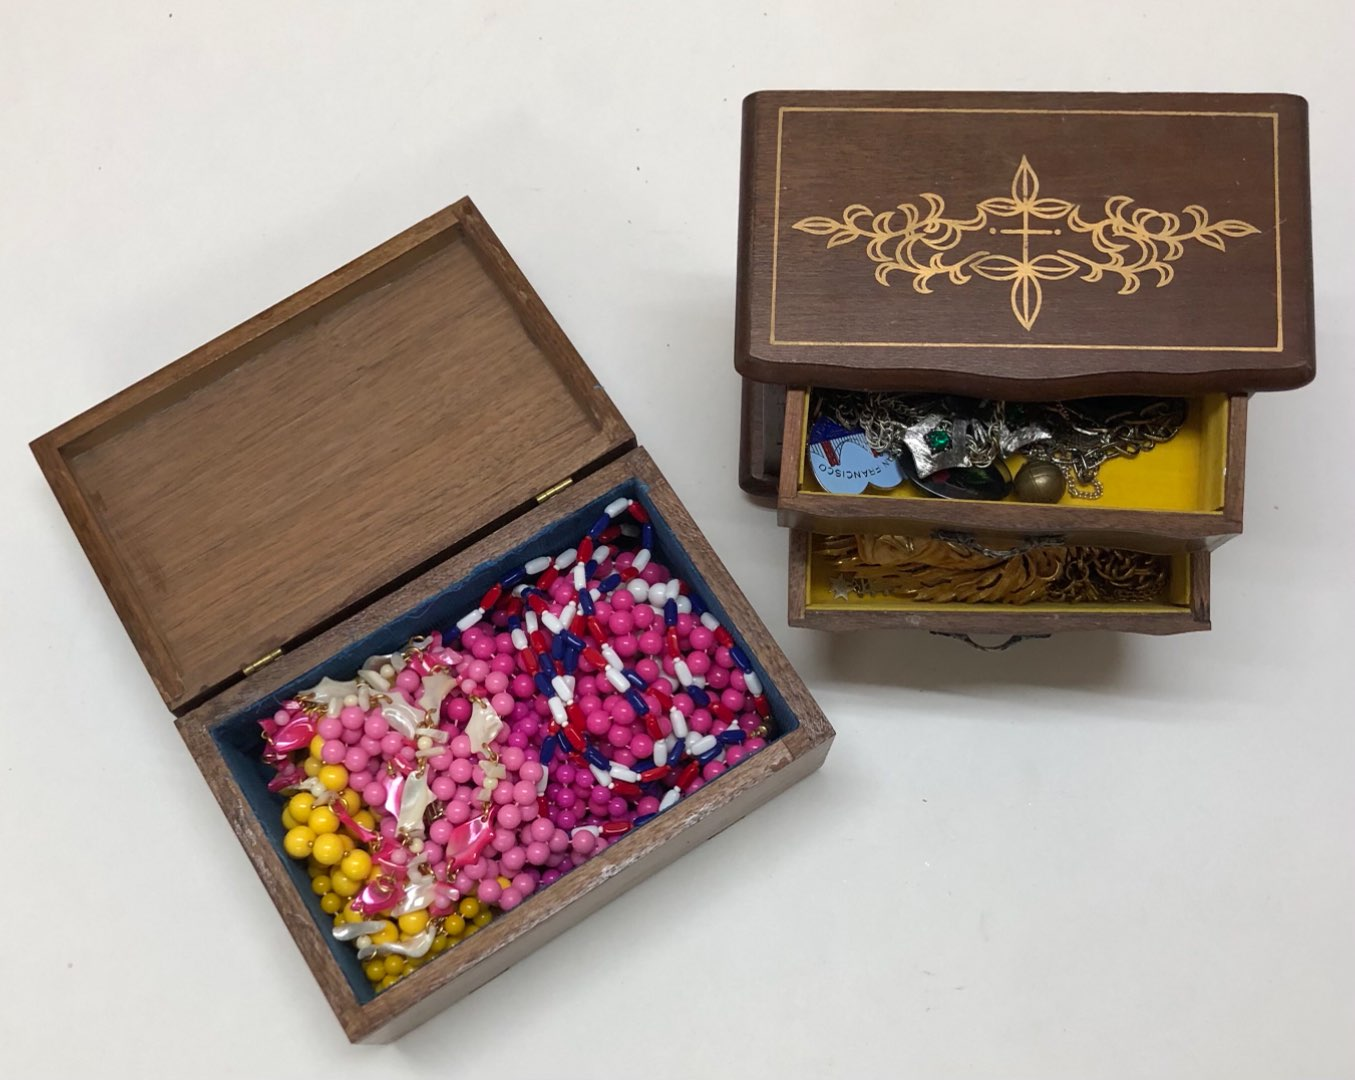 Lot # 199 - 2 Jewelry Boxes with Razza and ART brand Vintage Costume Jewelry